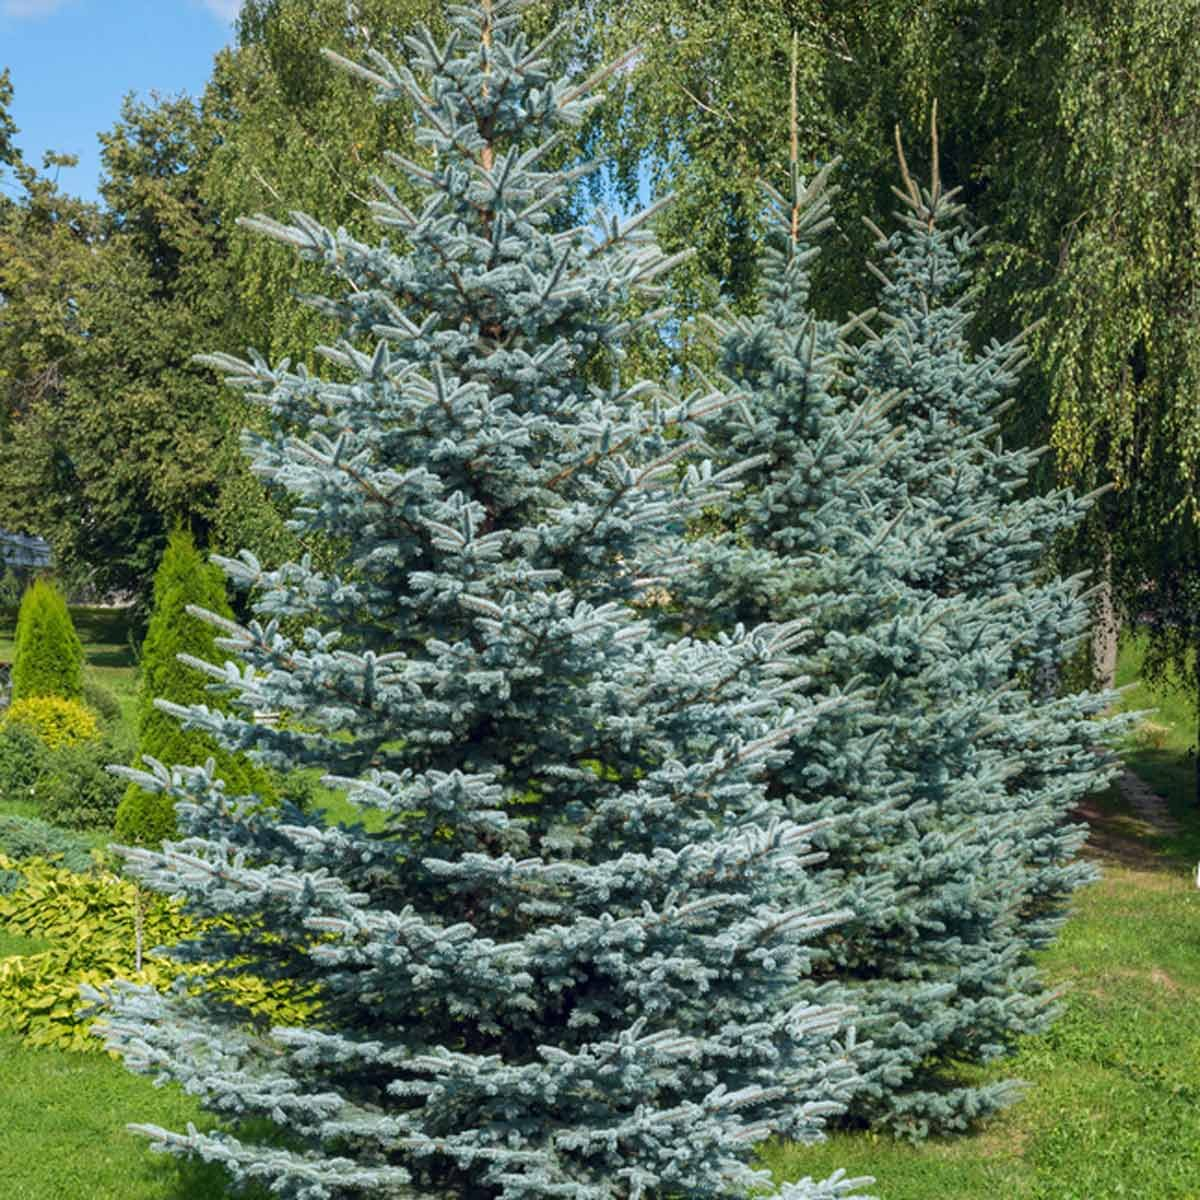 Colorado blue spruce (Picea pungens)